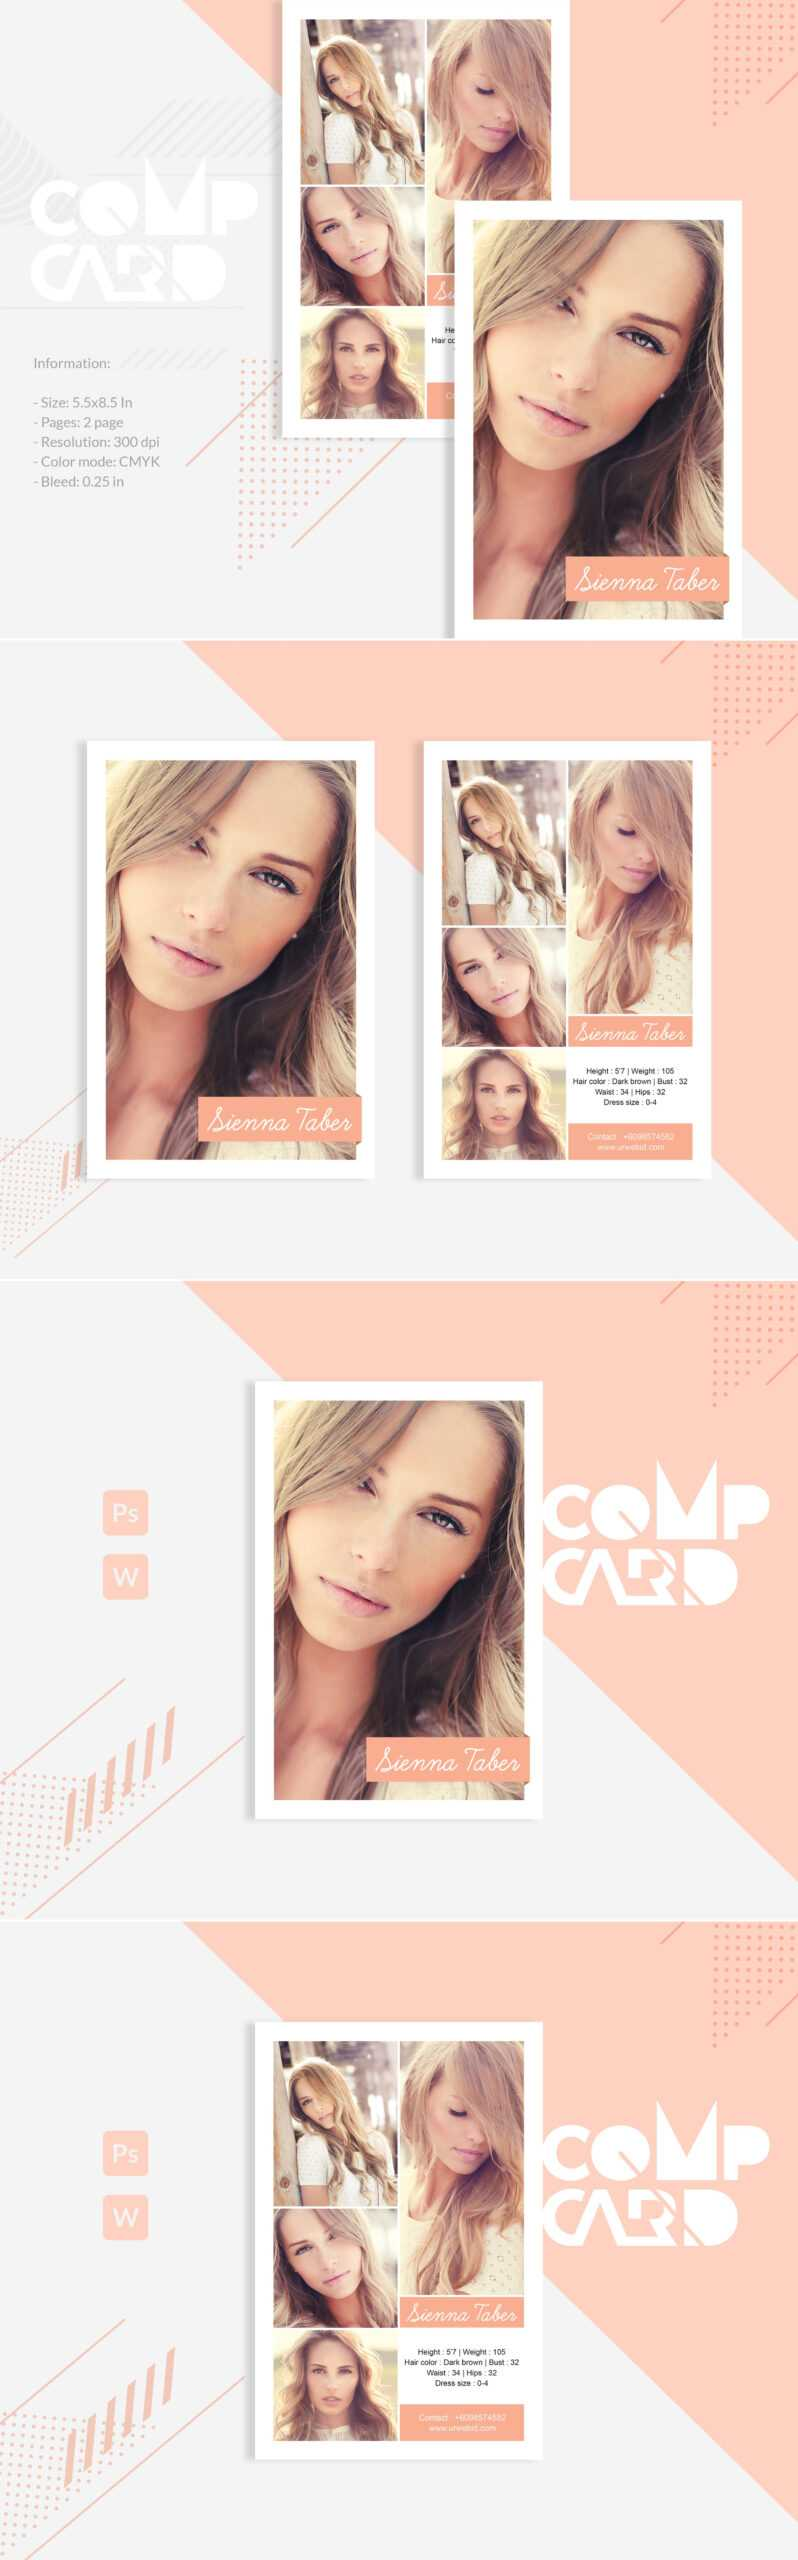 Sienna Taber - Modeling Comp Card Corporate Identity Template Inside Comp Card Template Download